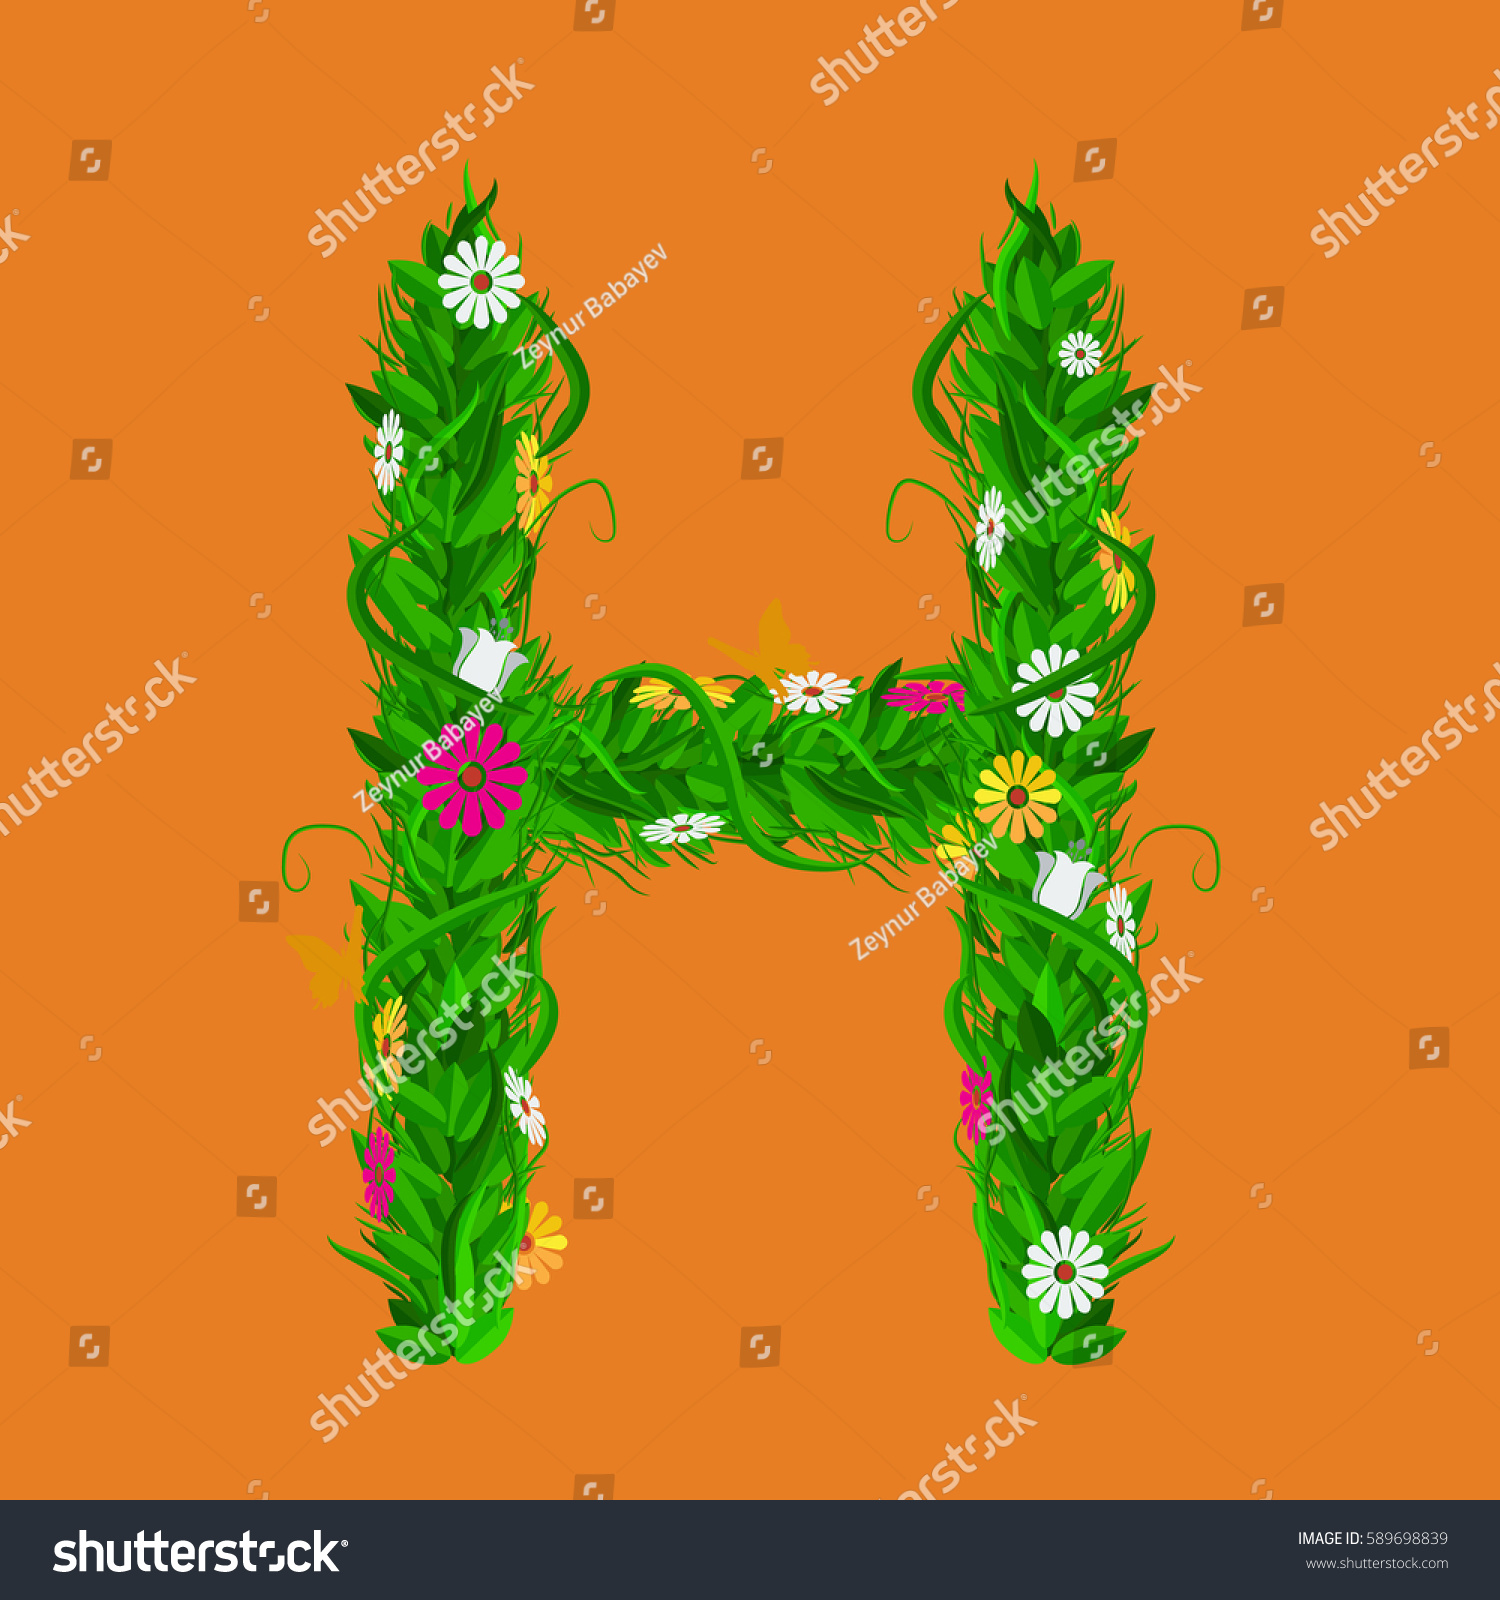 T Green Eco Letter With Leaves And Flowers For Your Design Flat